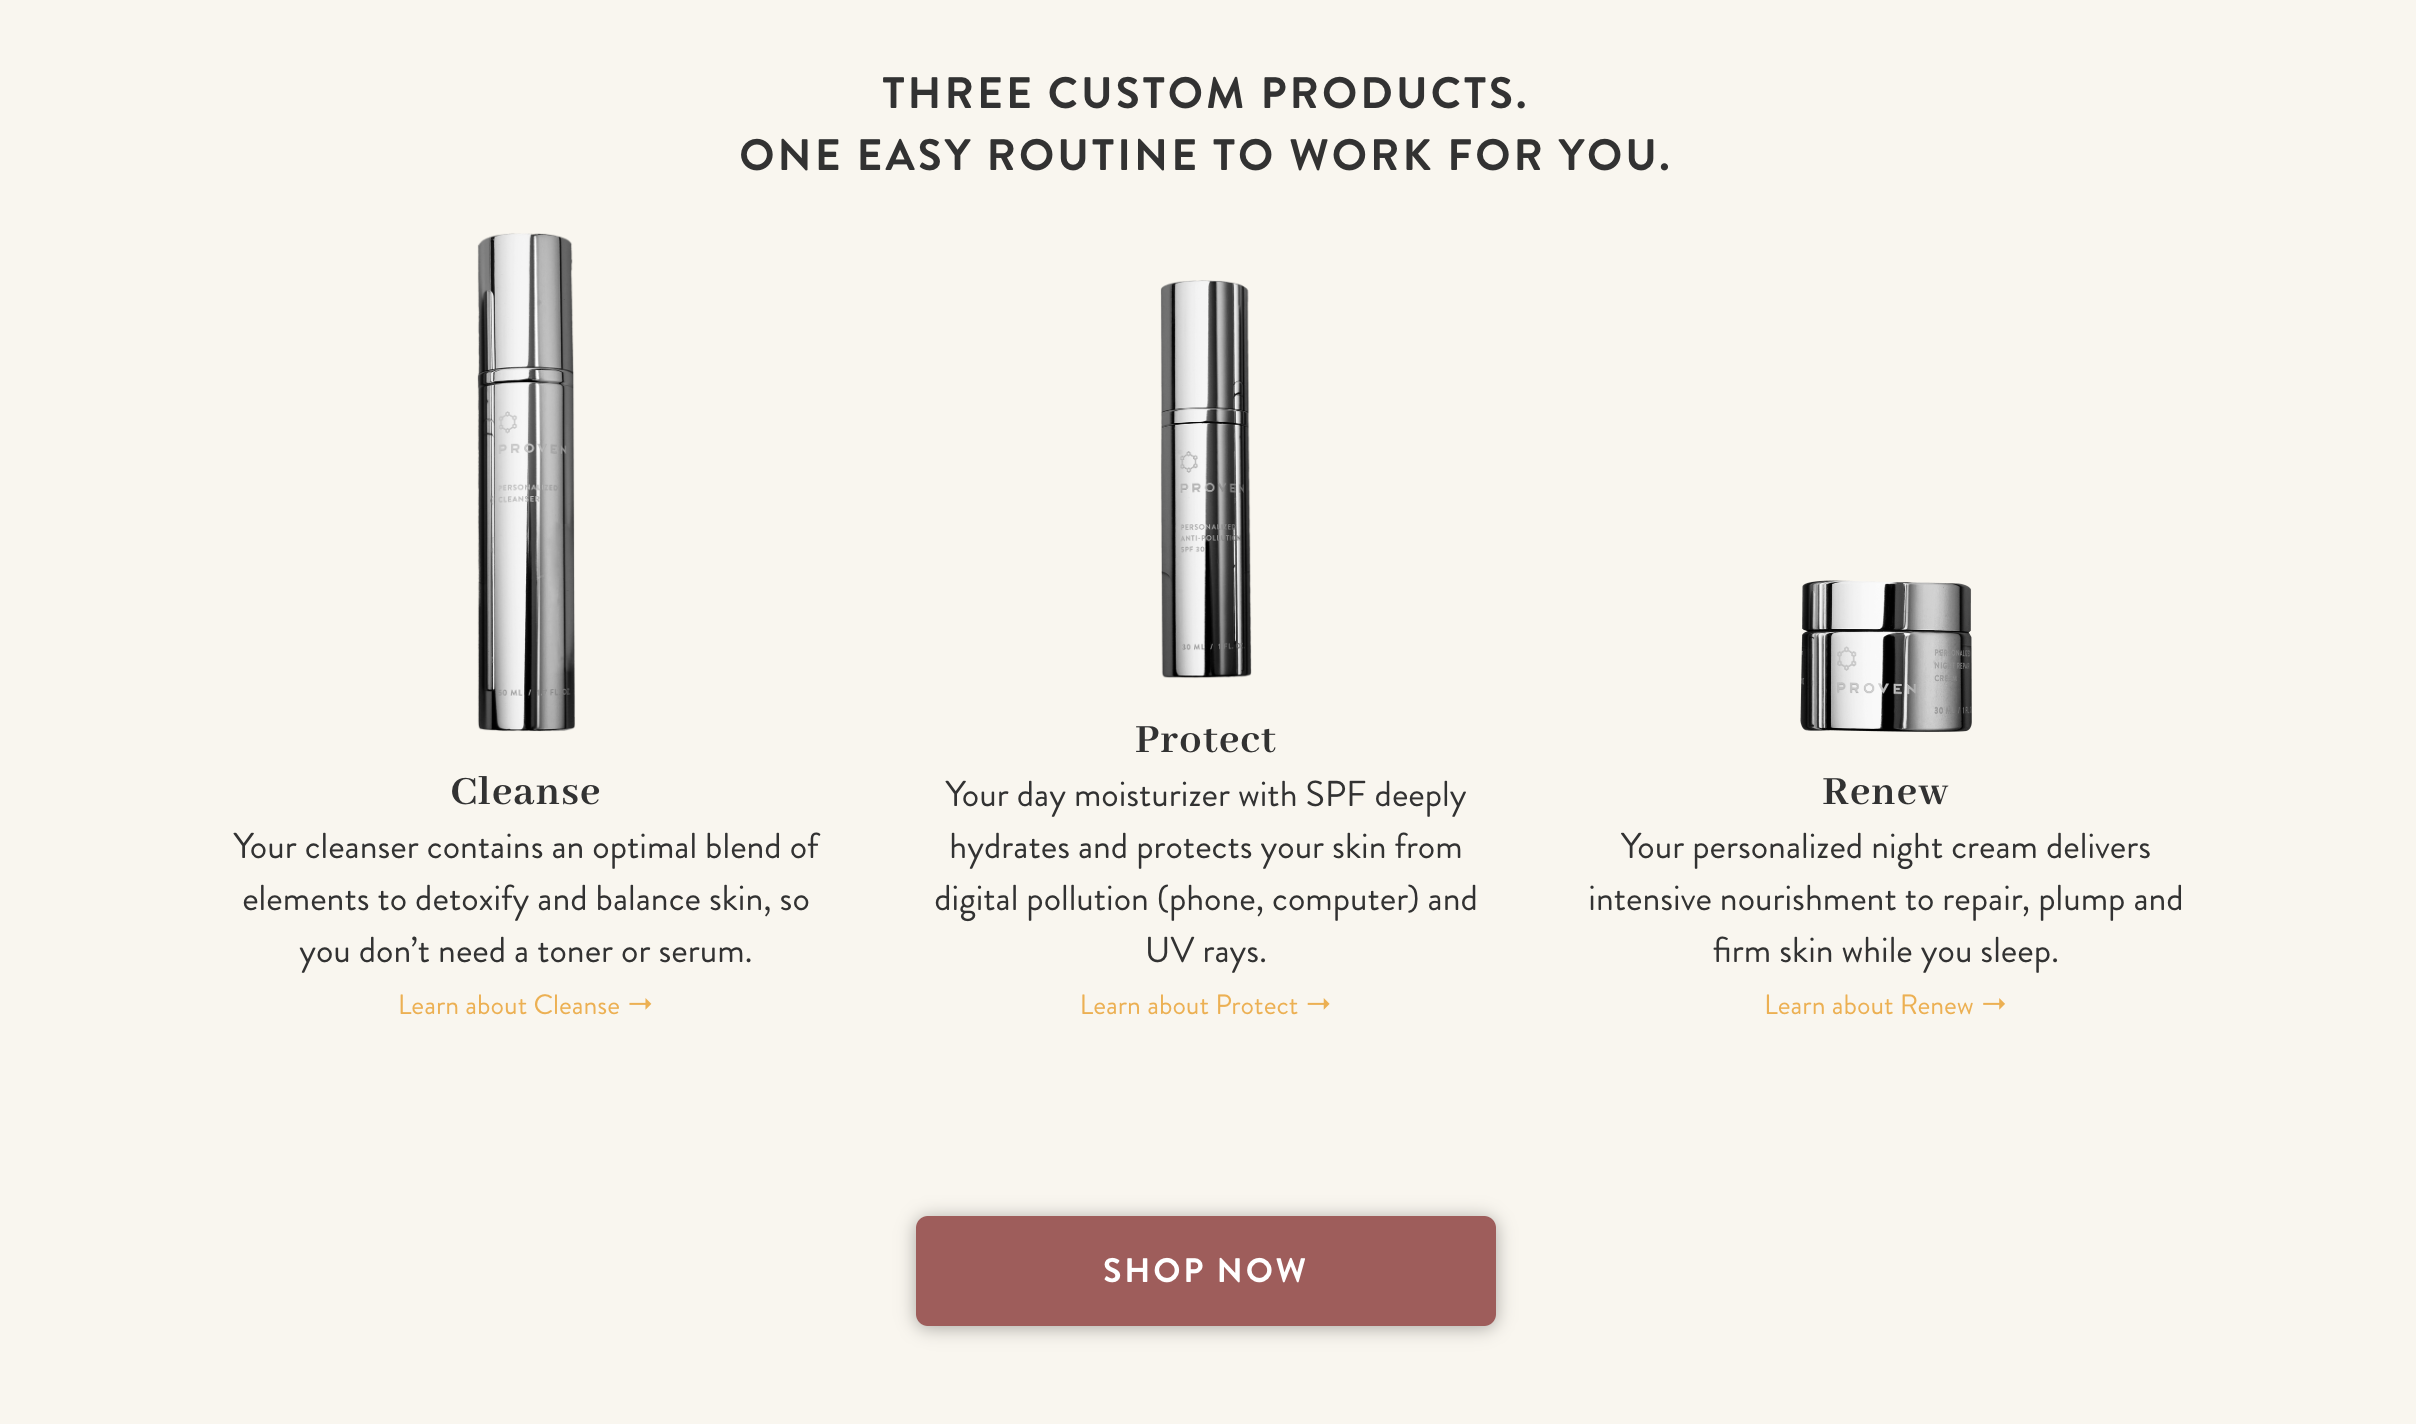 Proven Skin Care's customizable 3-step skin care routine featured on their homepage.